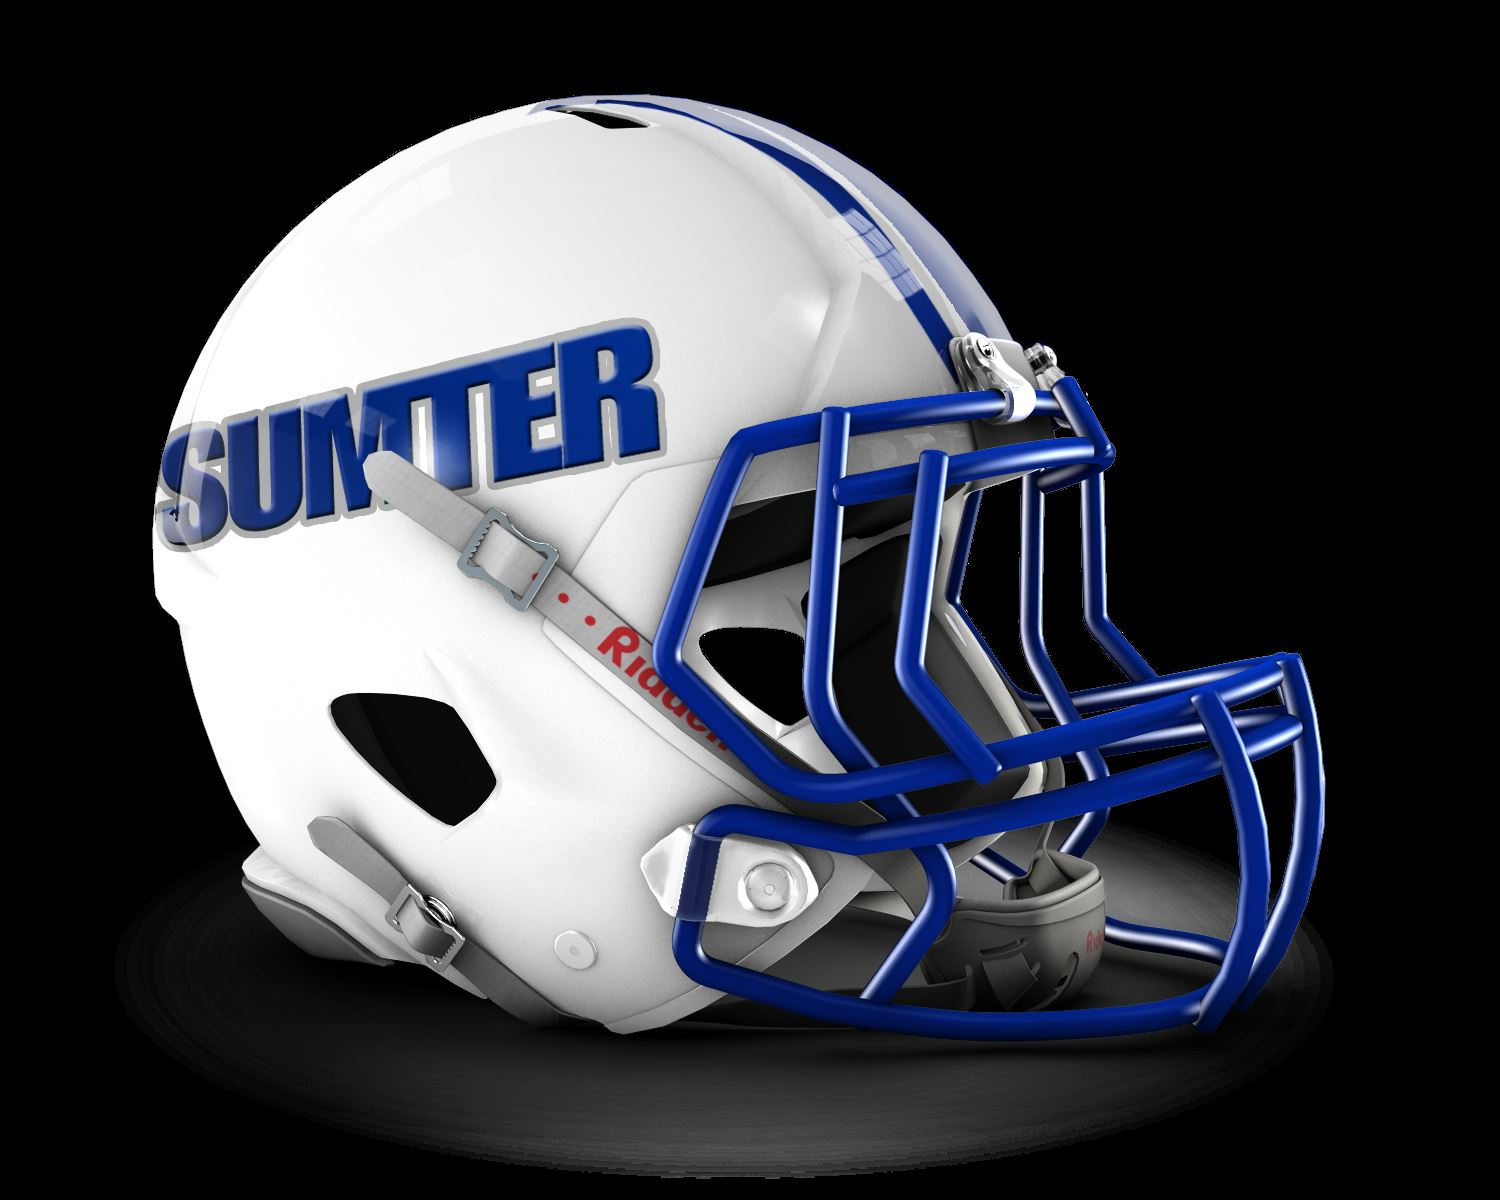 Sumter High School - Archive